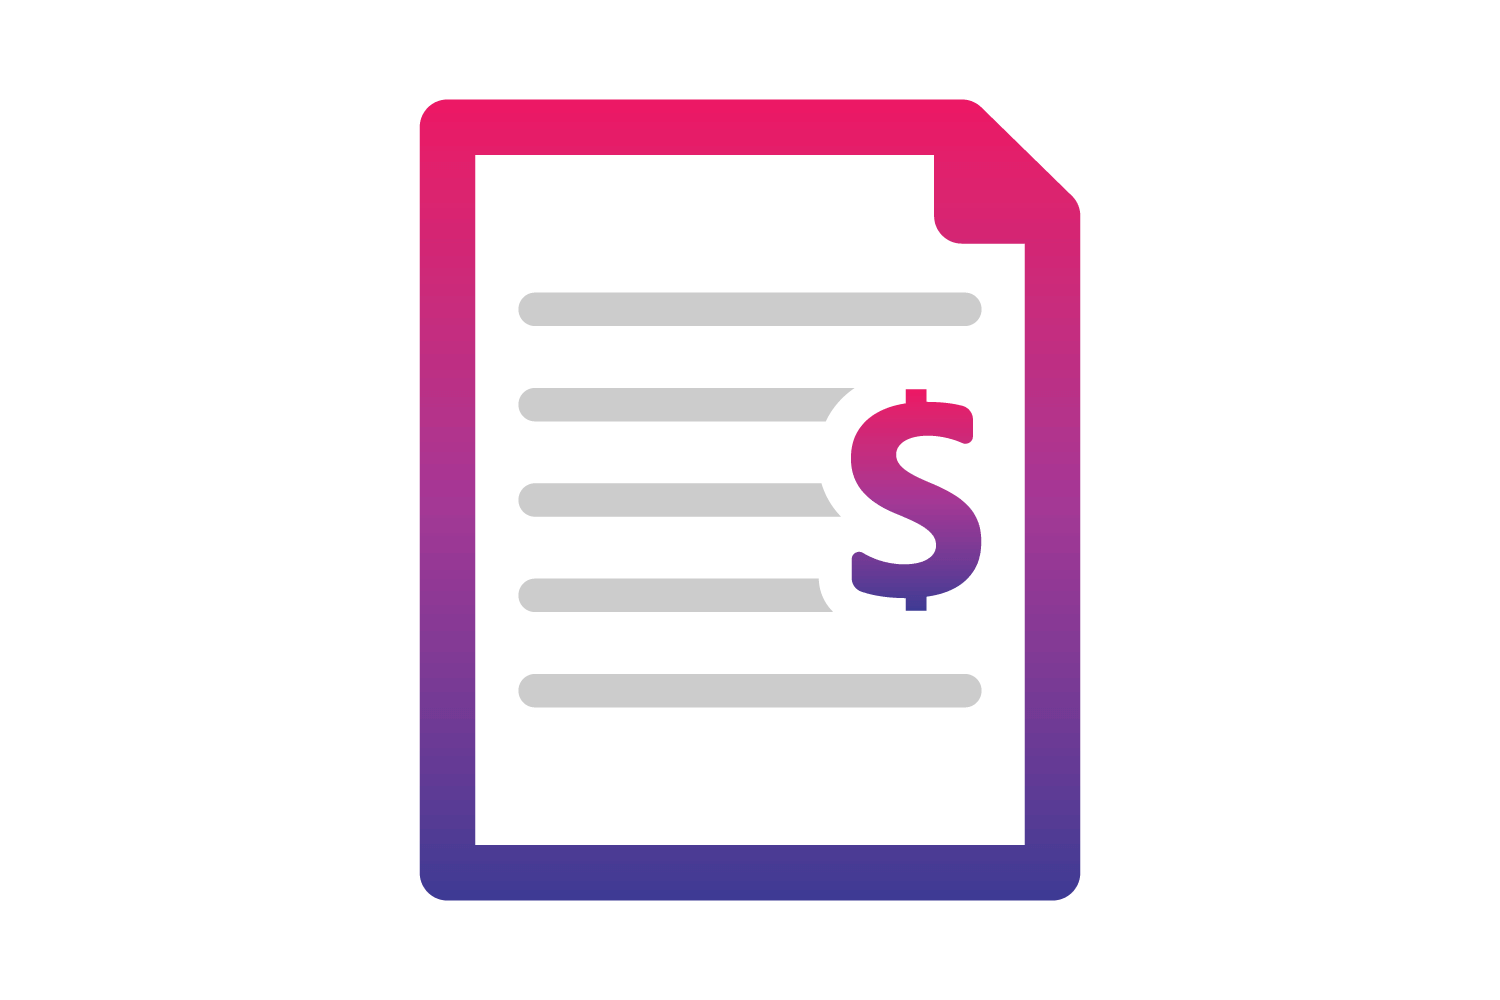 An icon of a document with a dollar sign on it.